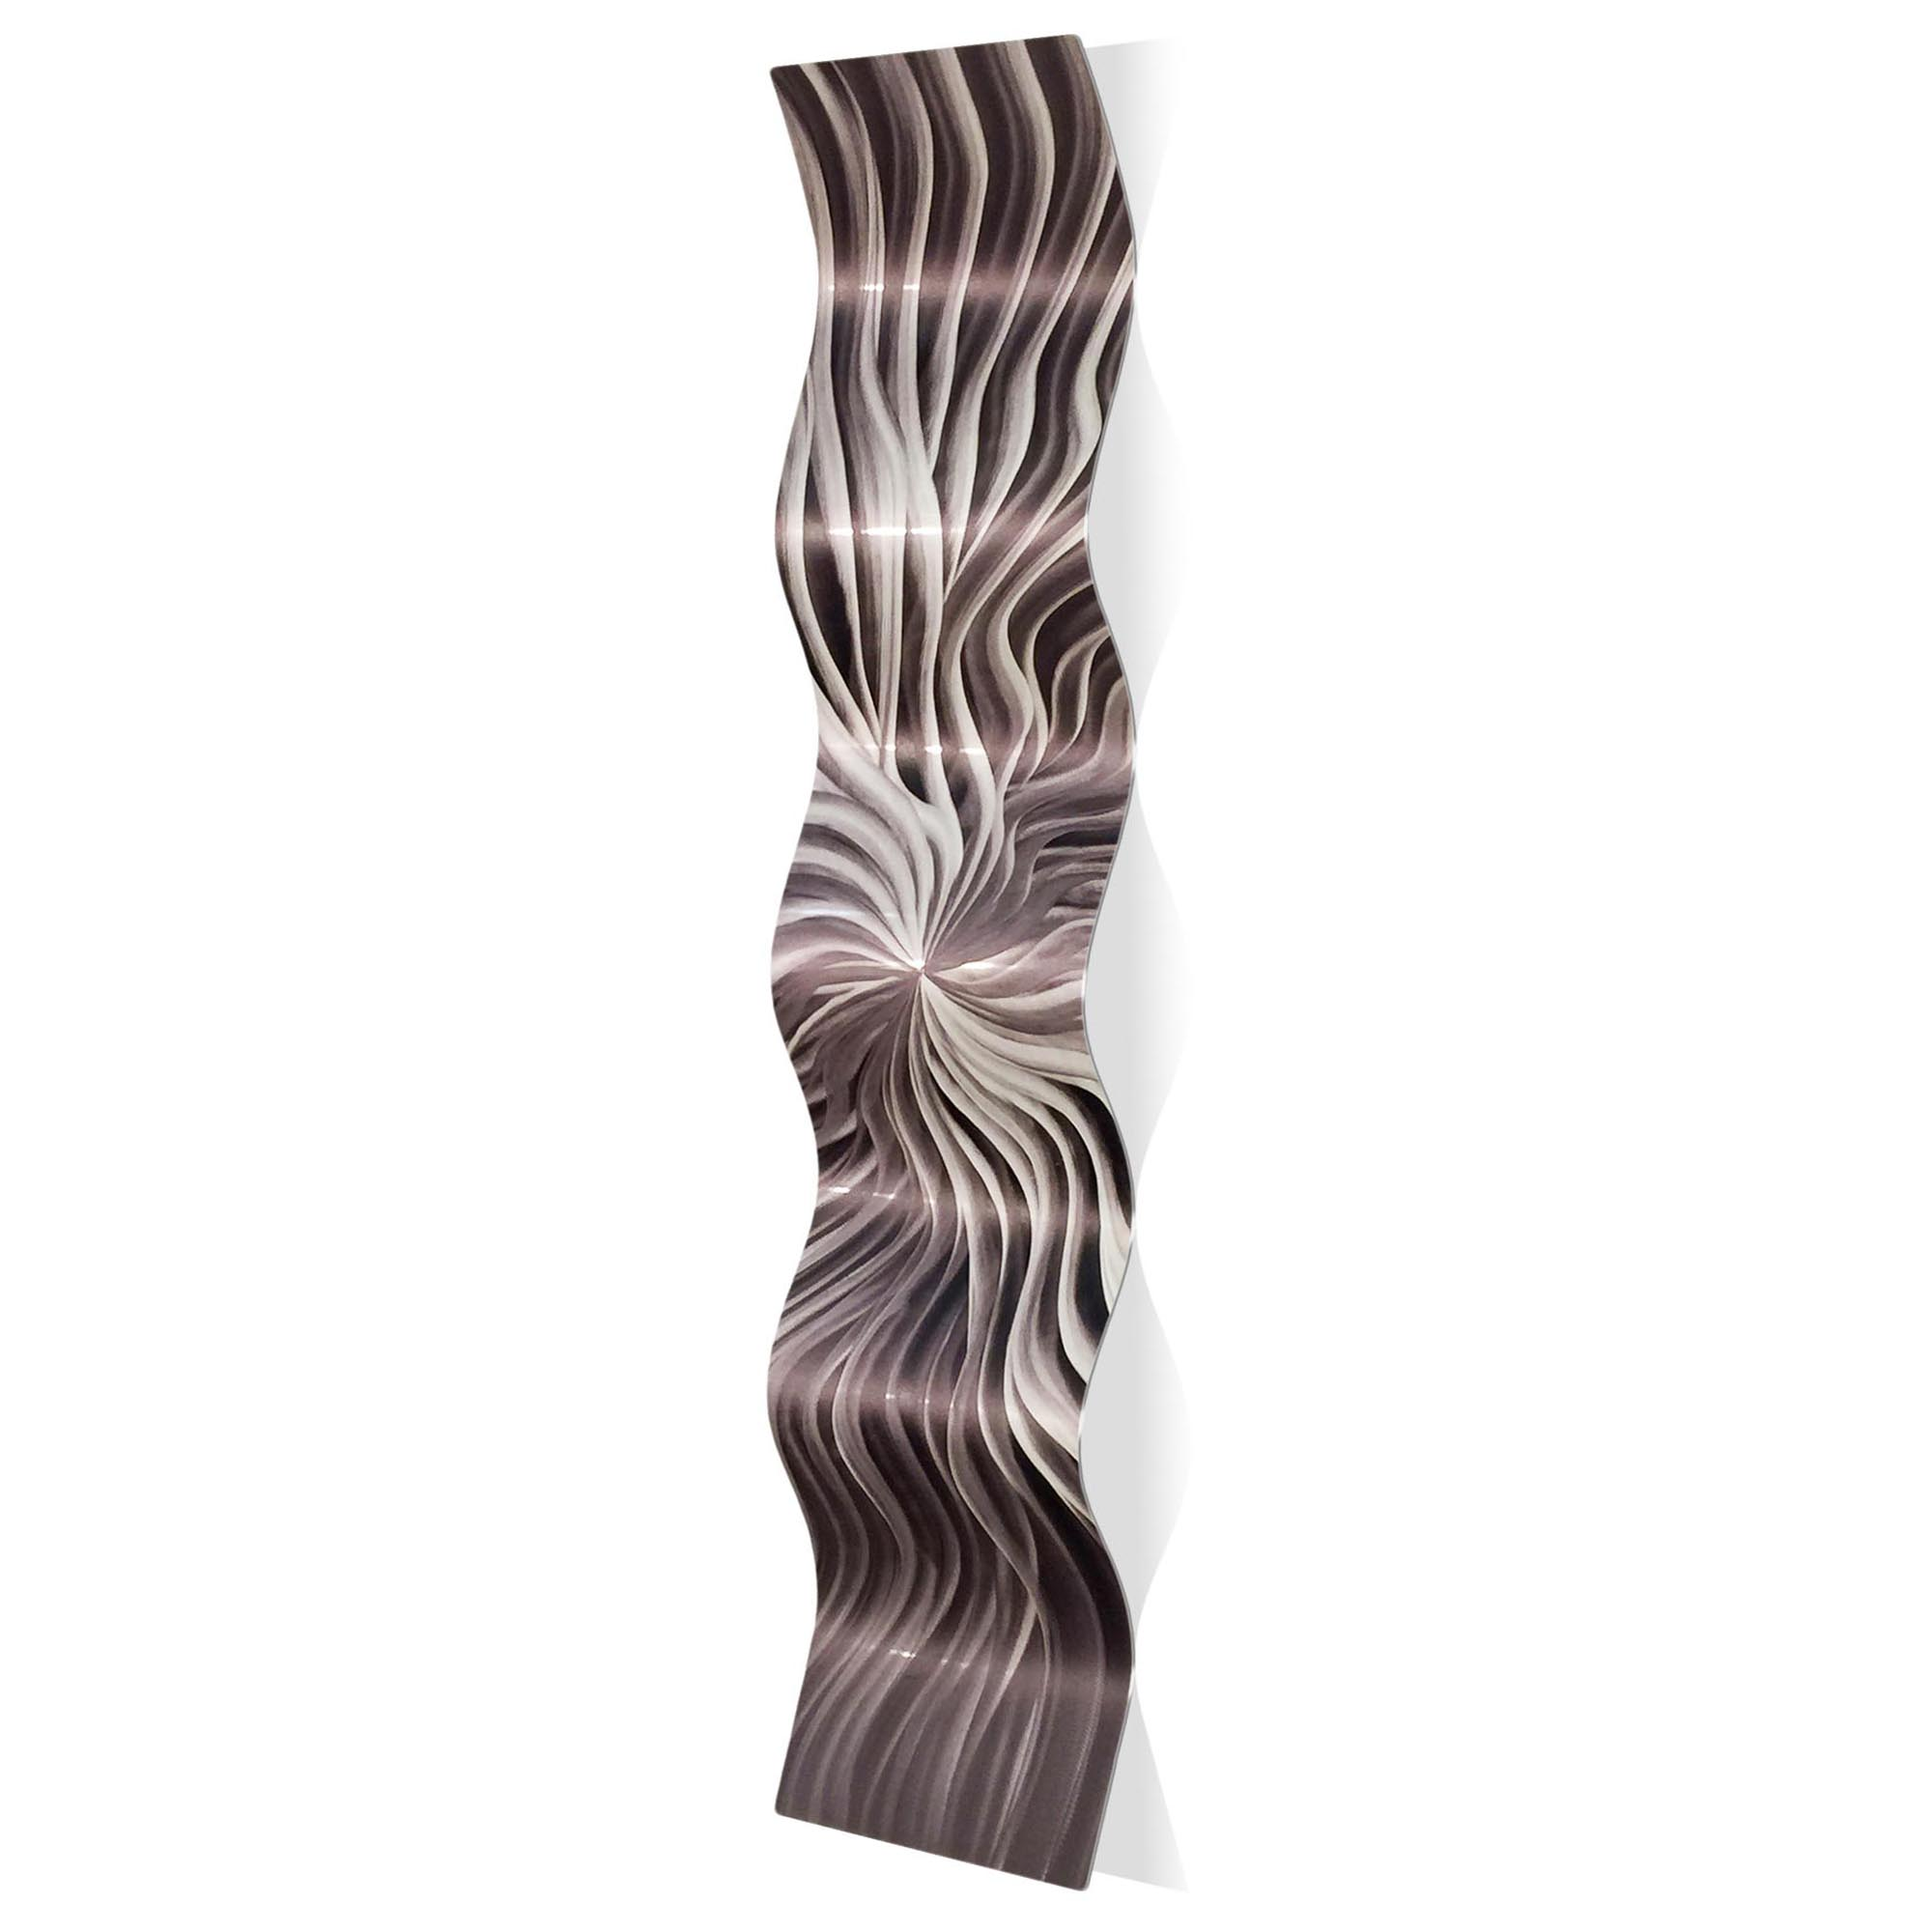 Flexure Wave 9.5x44in. Metal Eclectic Decor